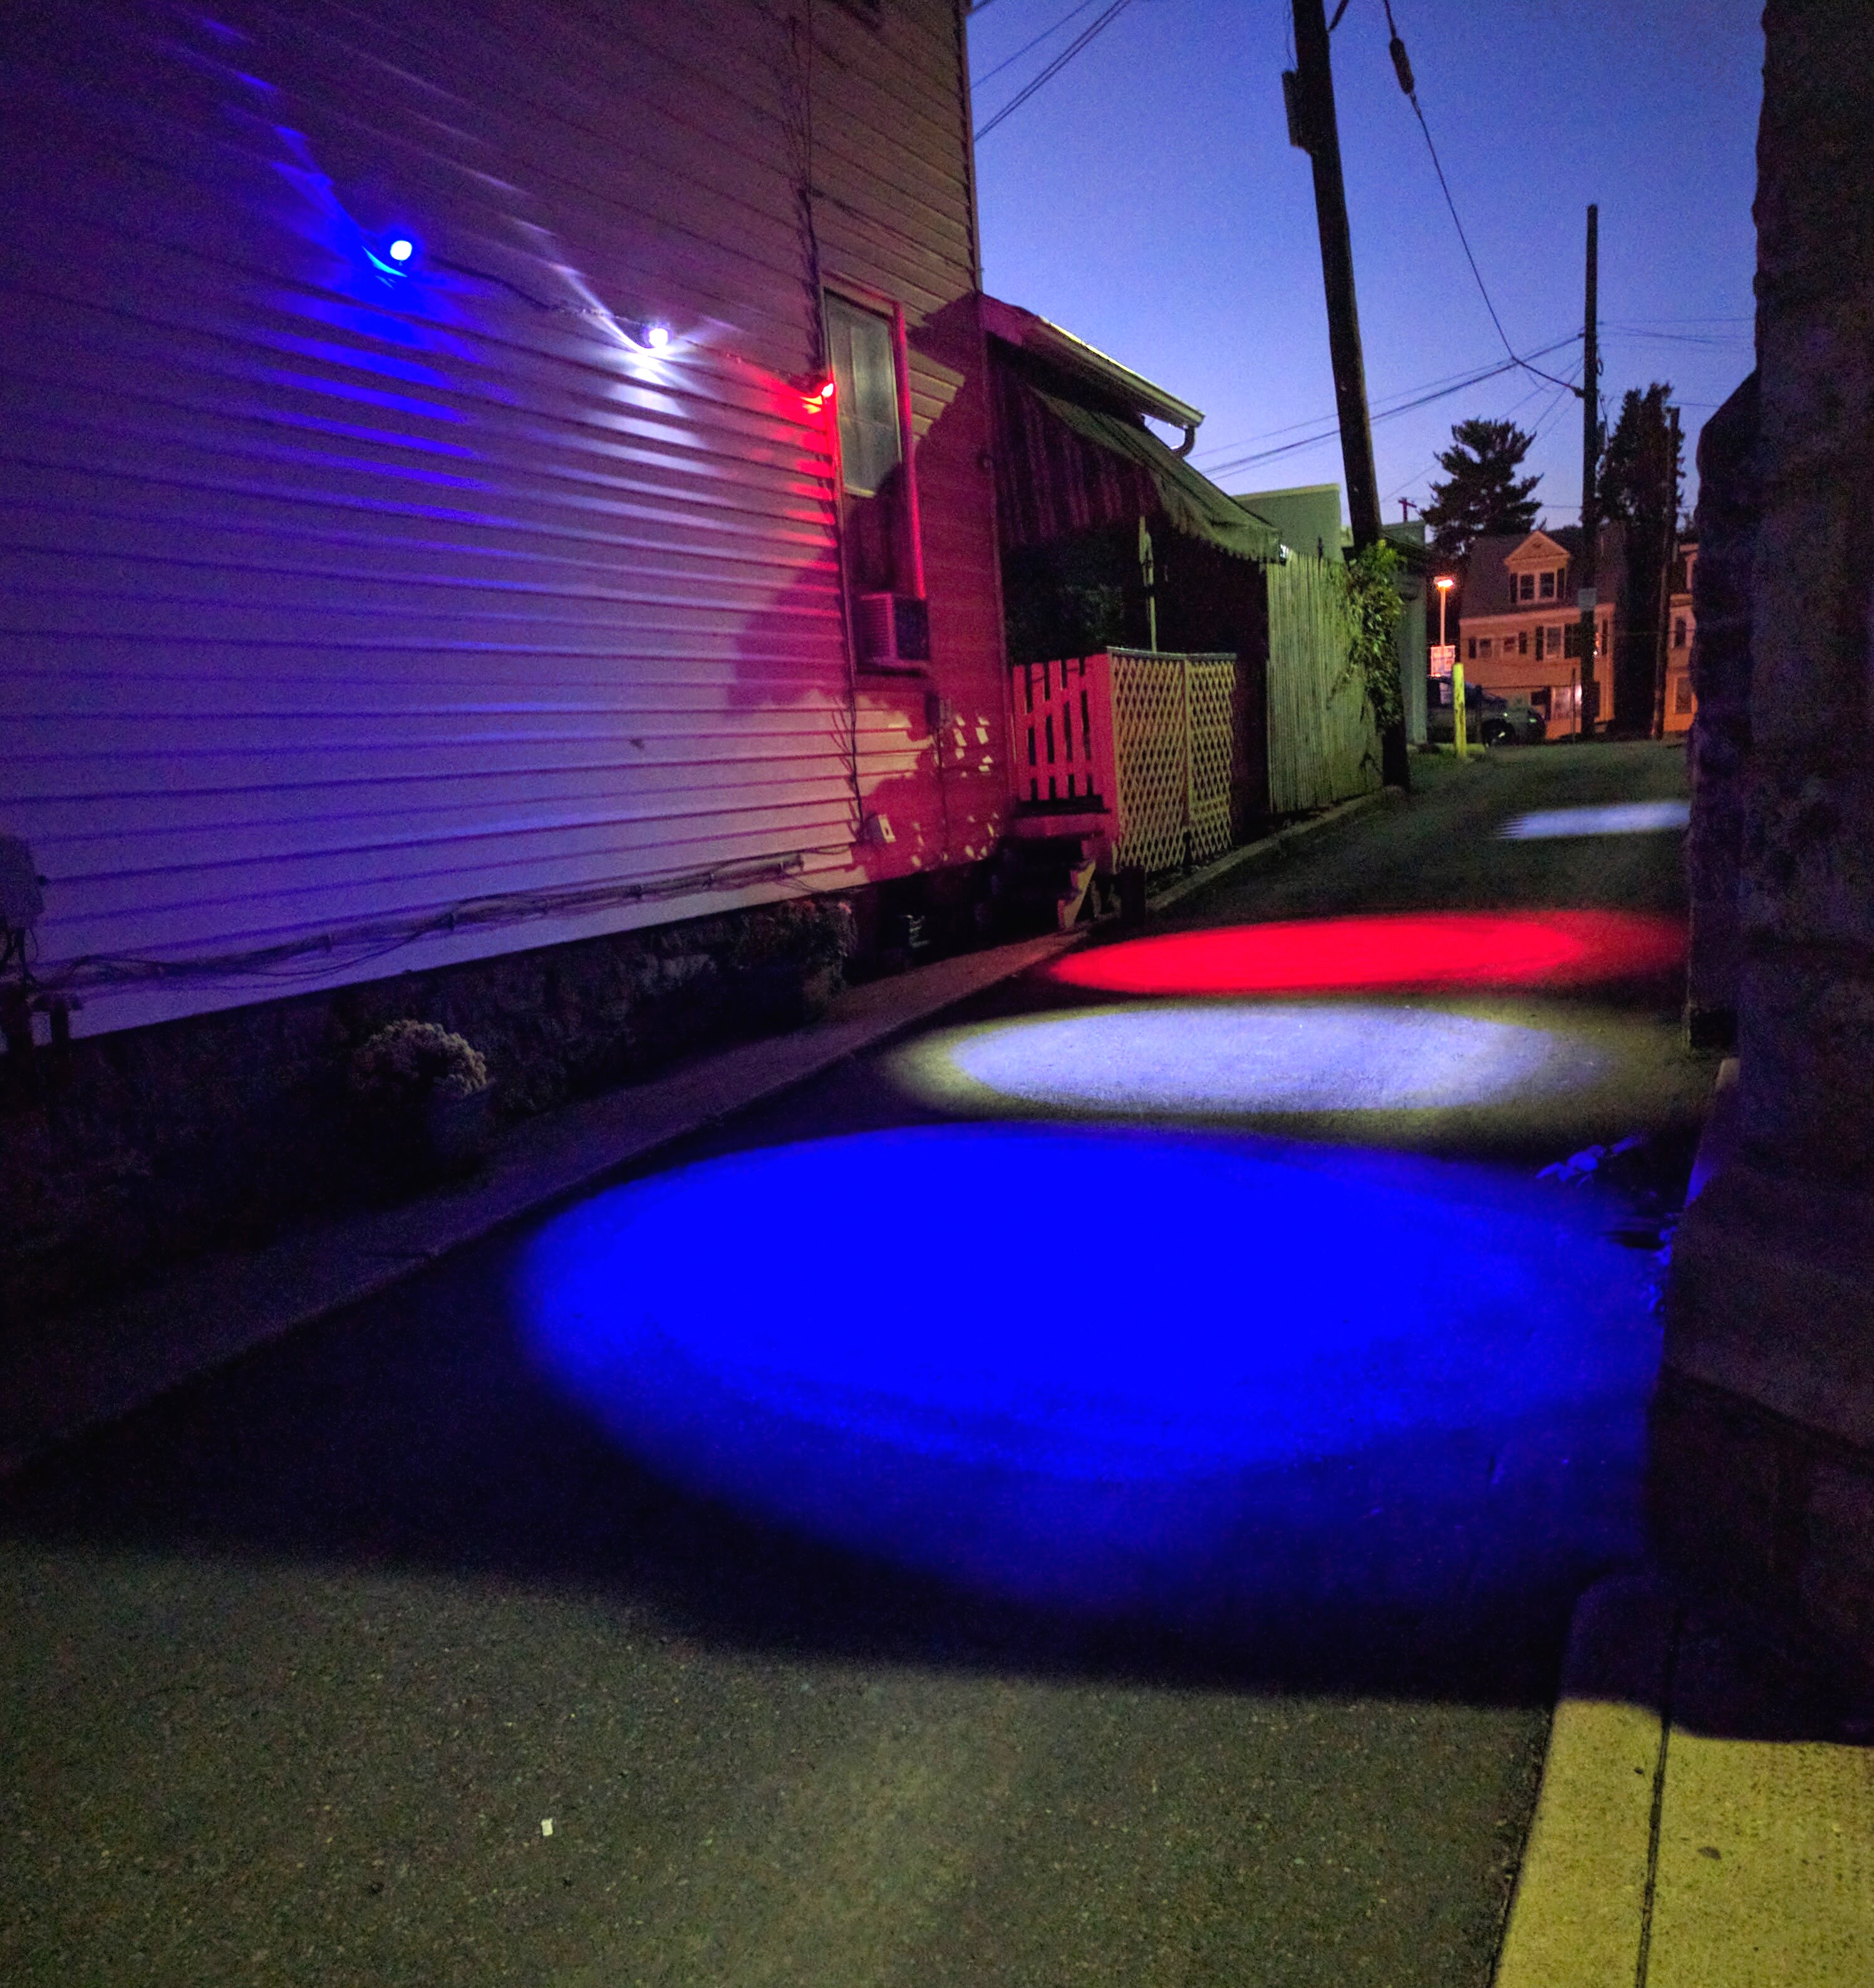 Customer uses 20W red  white  and blue LED spotlights to light up street. Super Bright 12V LED Light   Interior  Project   Retail  Casino